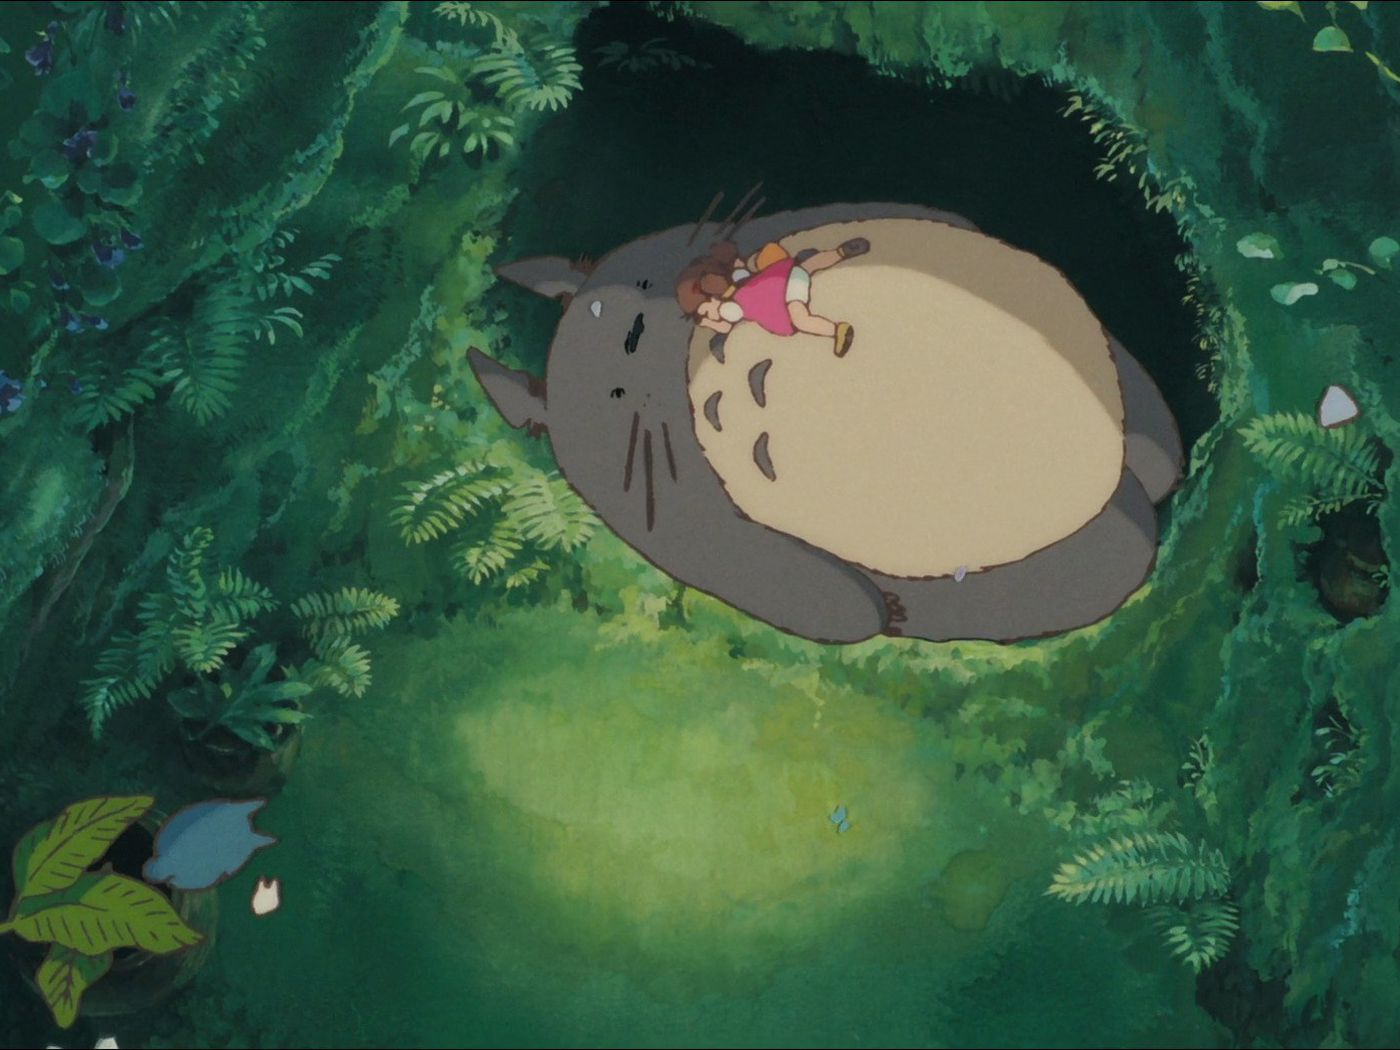 How Studio Ghibli S Best Films Help Me Cope With The World Polygon